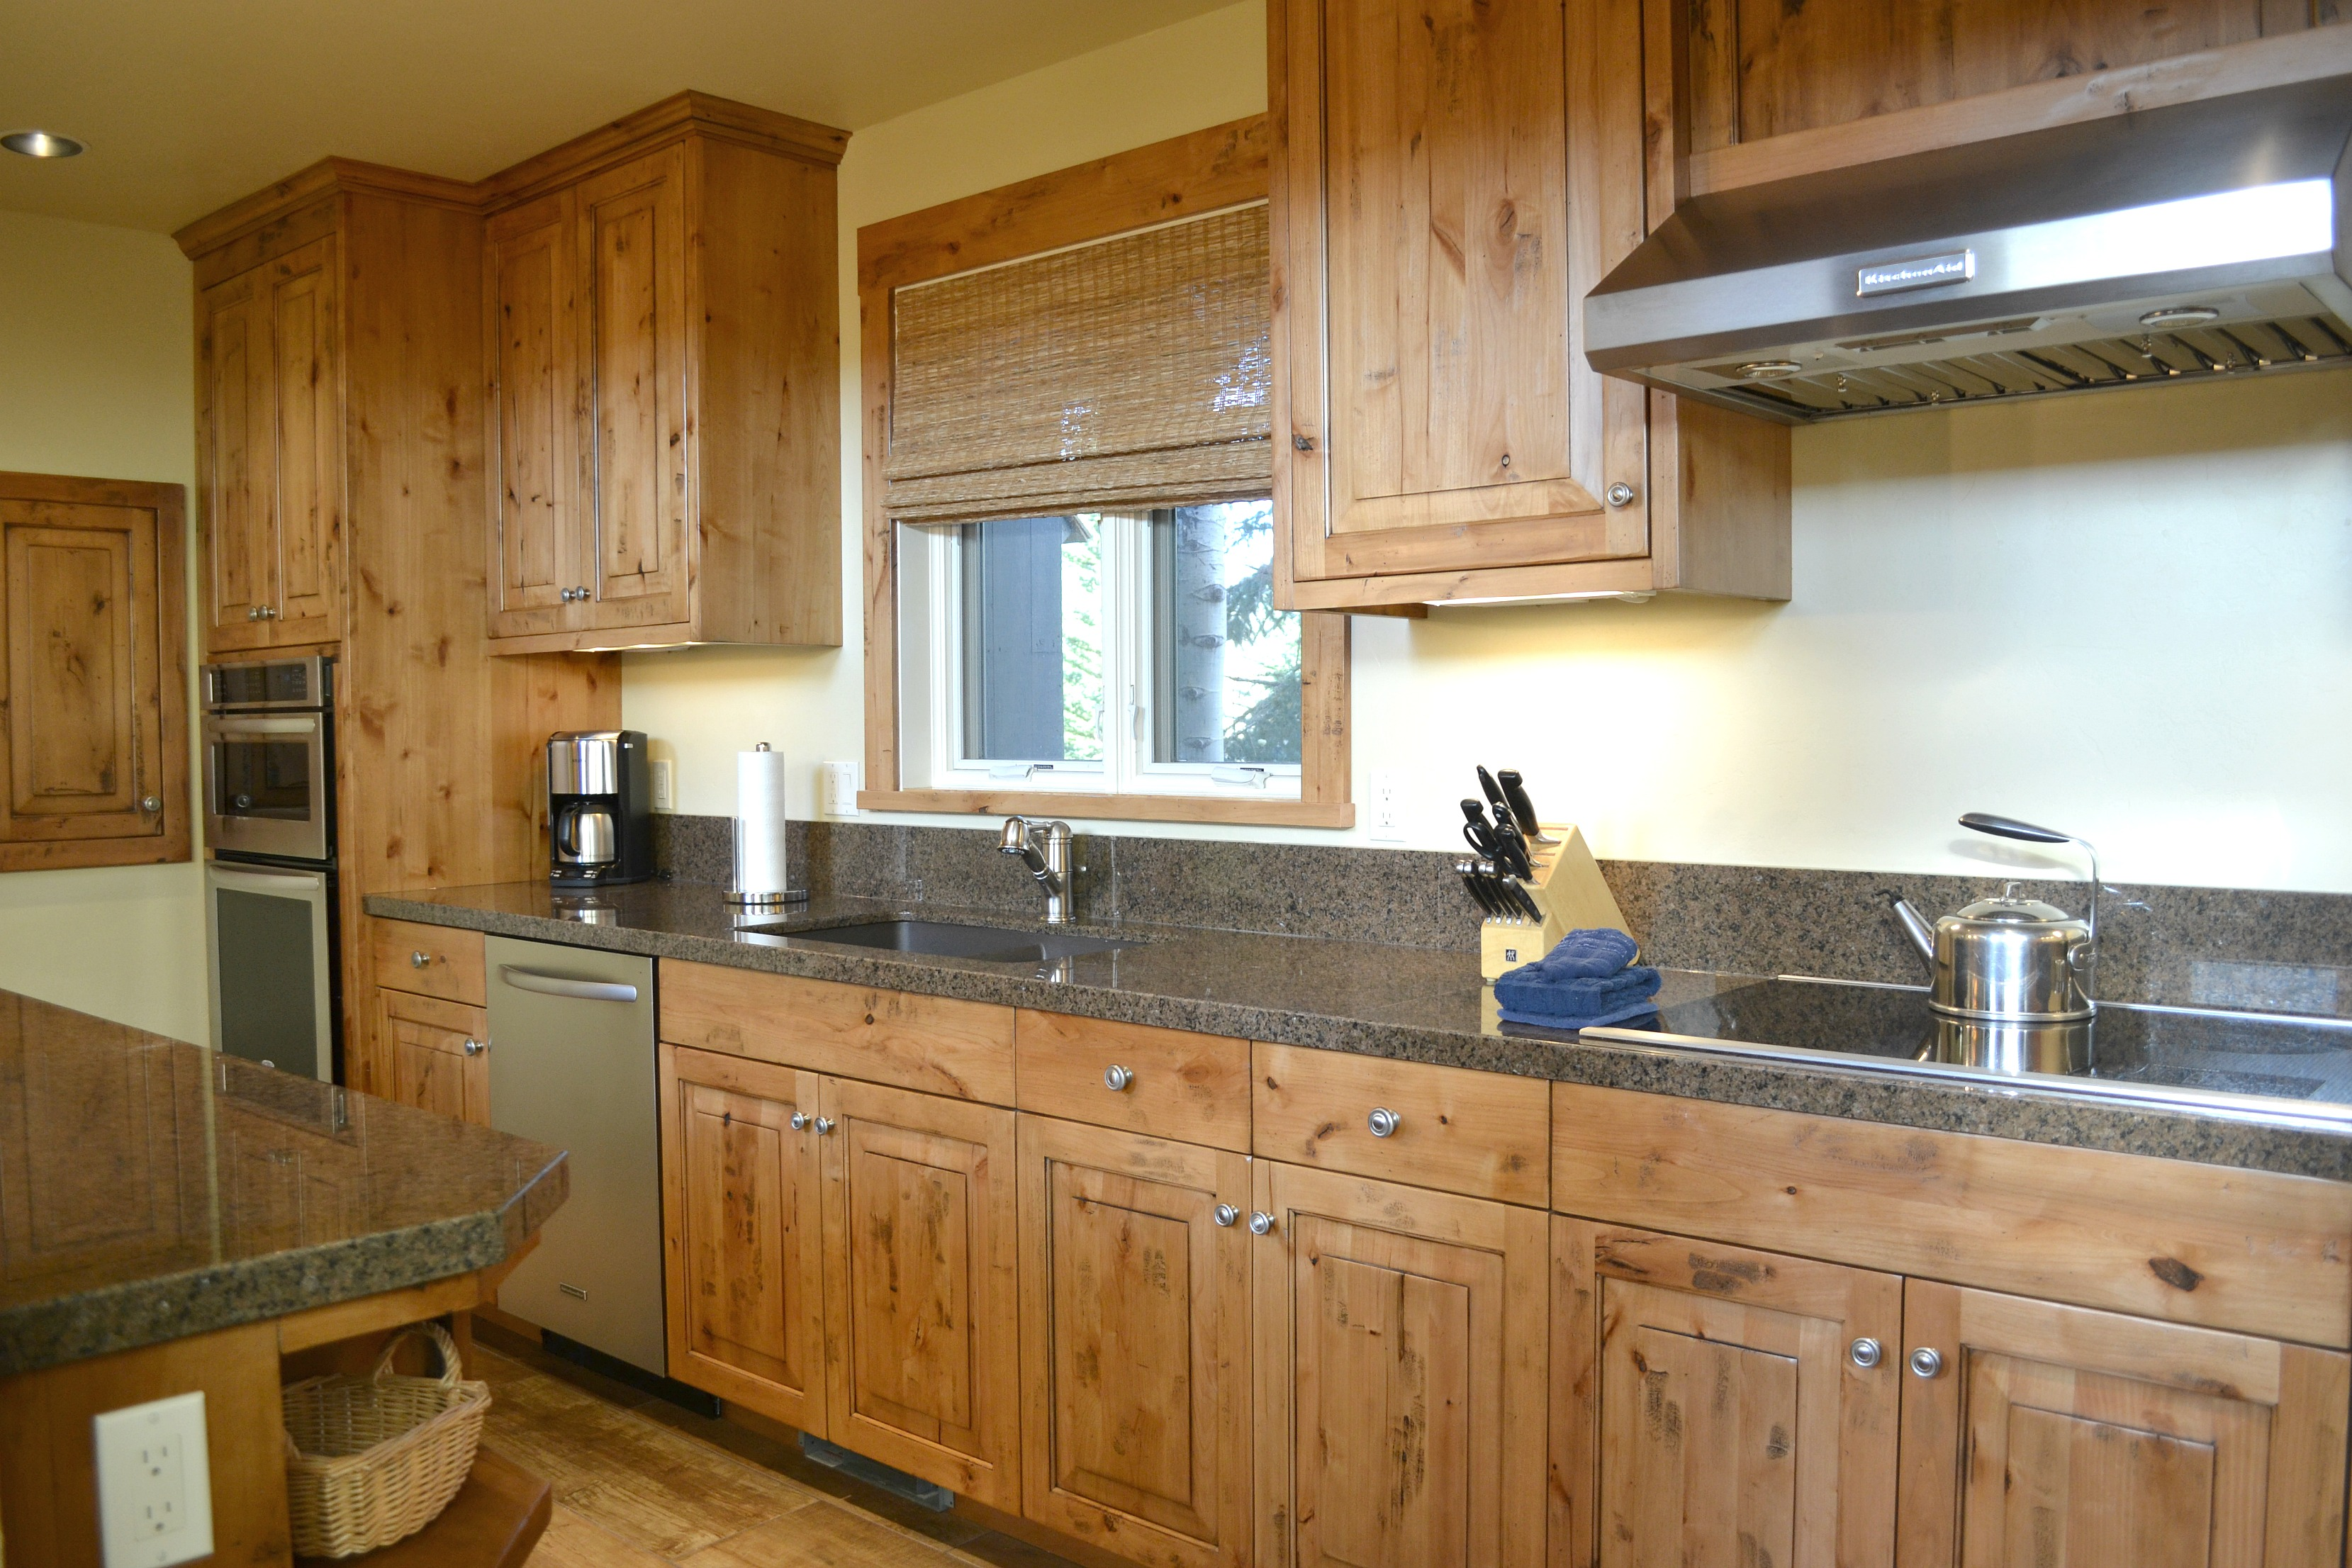 Golf package special in jackson hole jackson hole for Kitchen jackson hole